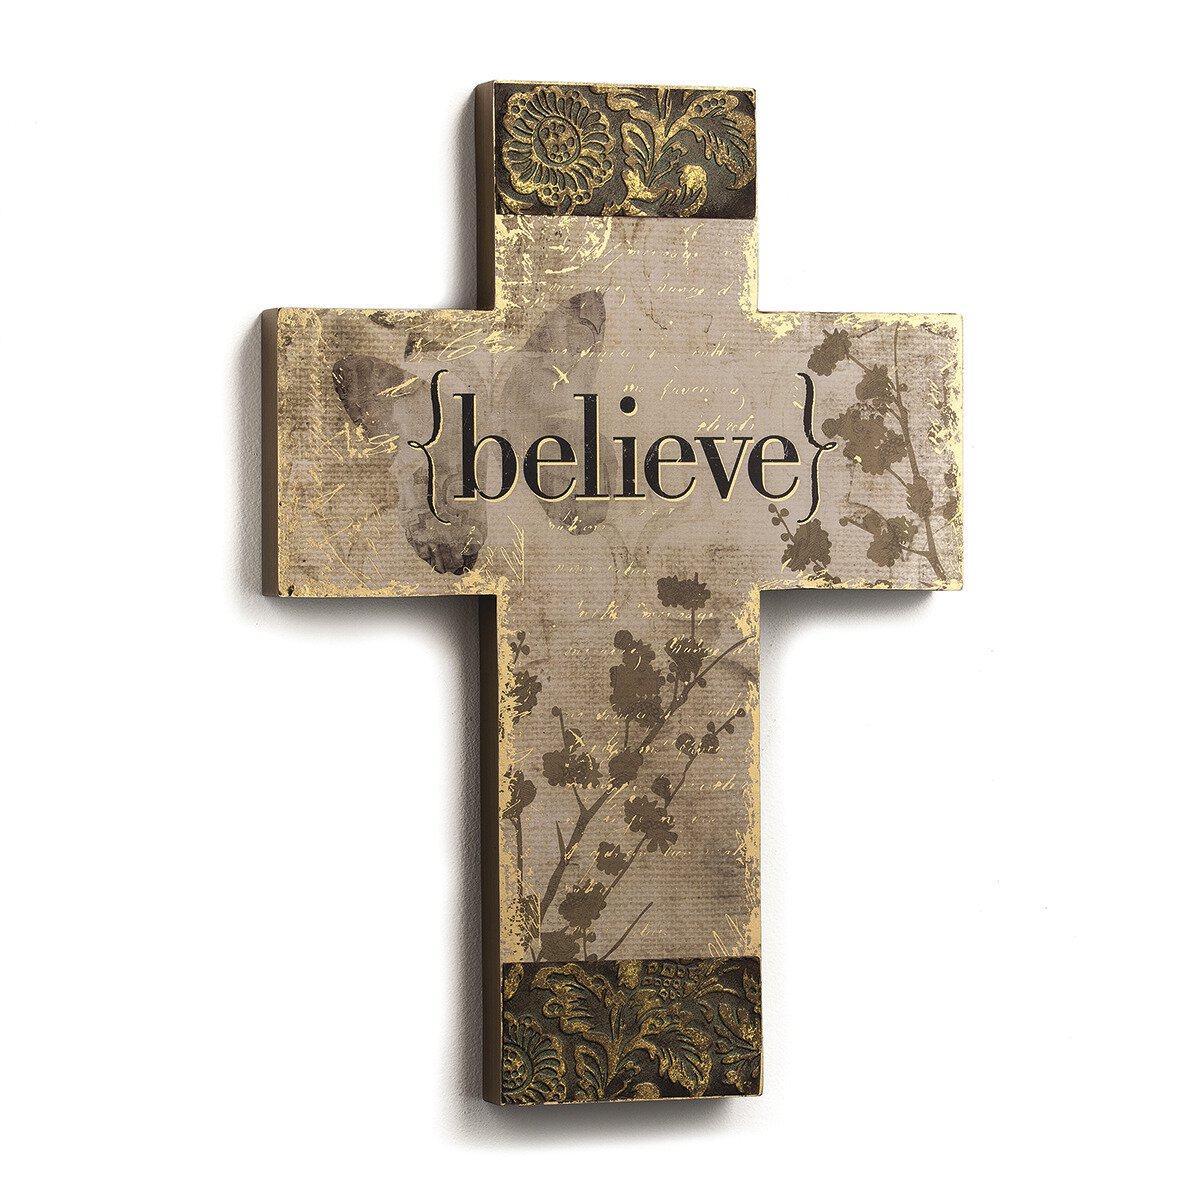 Believe - Wall Cross for the Home